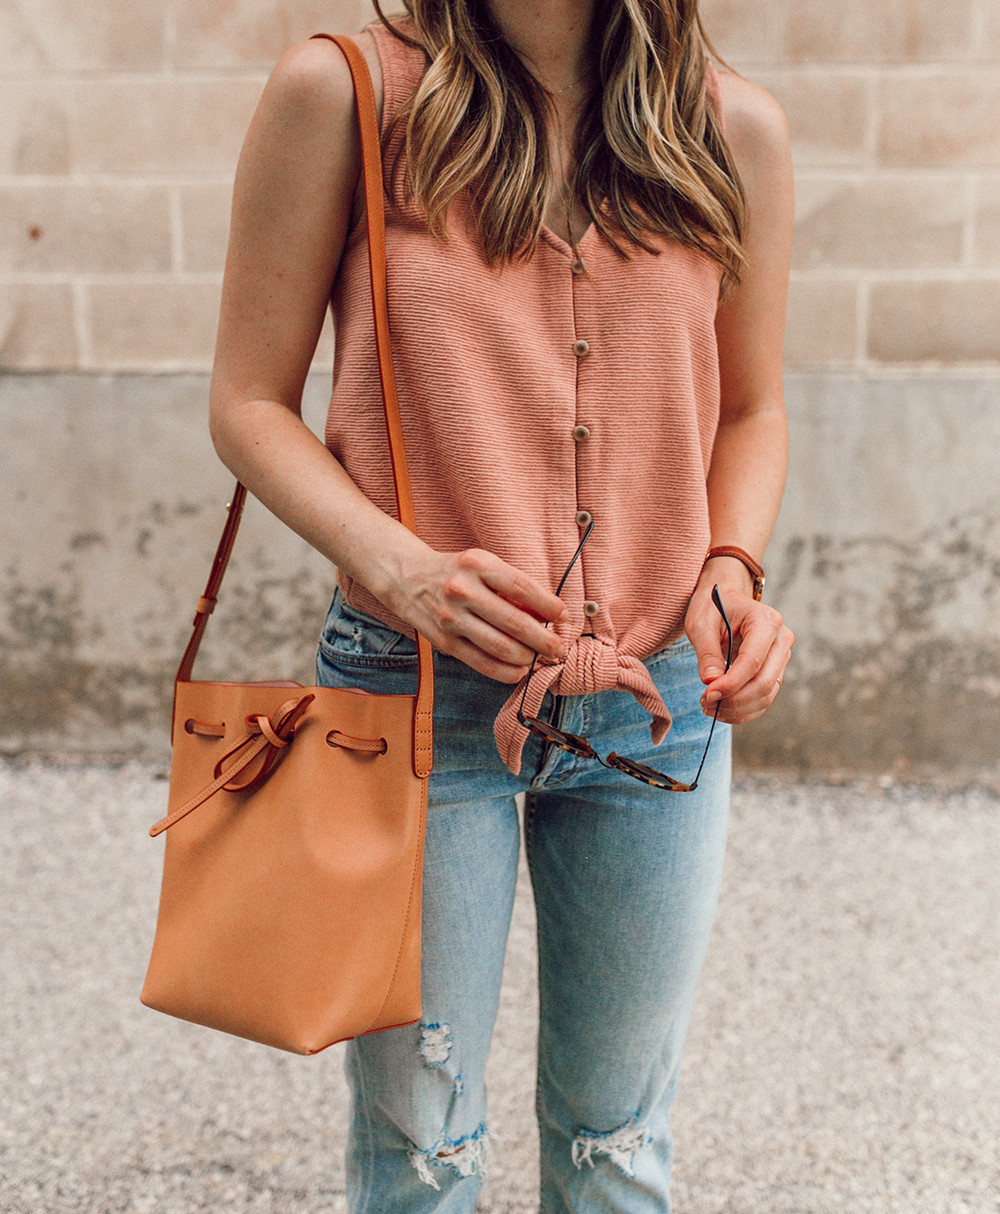 livvyland-blog-olivia-watson-austin-texas-style-blogger-trunk-club-madewell-pink-front-tie-top-mother-tomcat-ankle-straight-leg-jeans-2